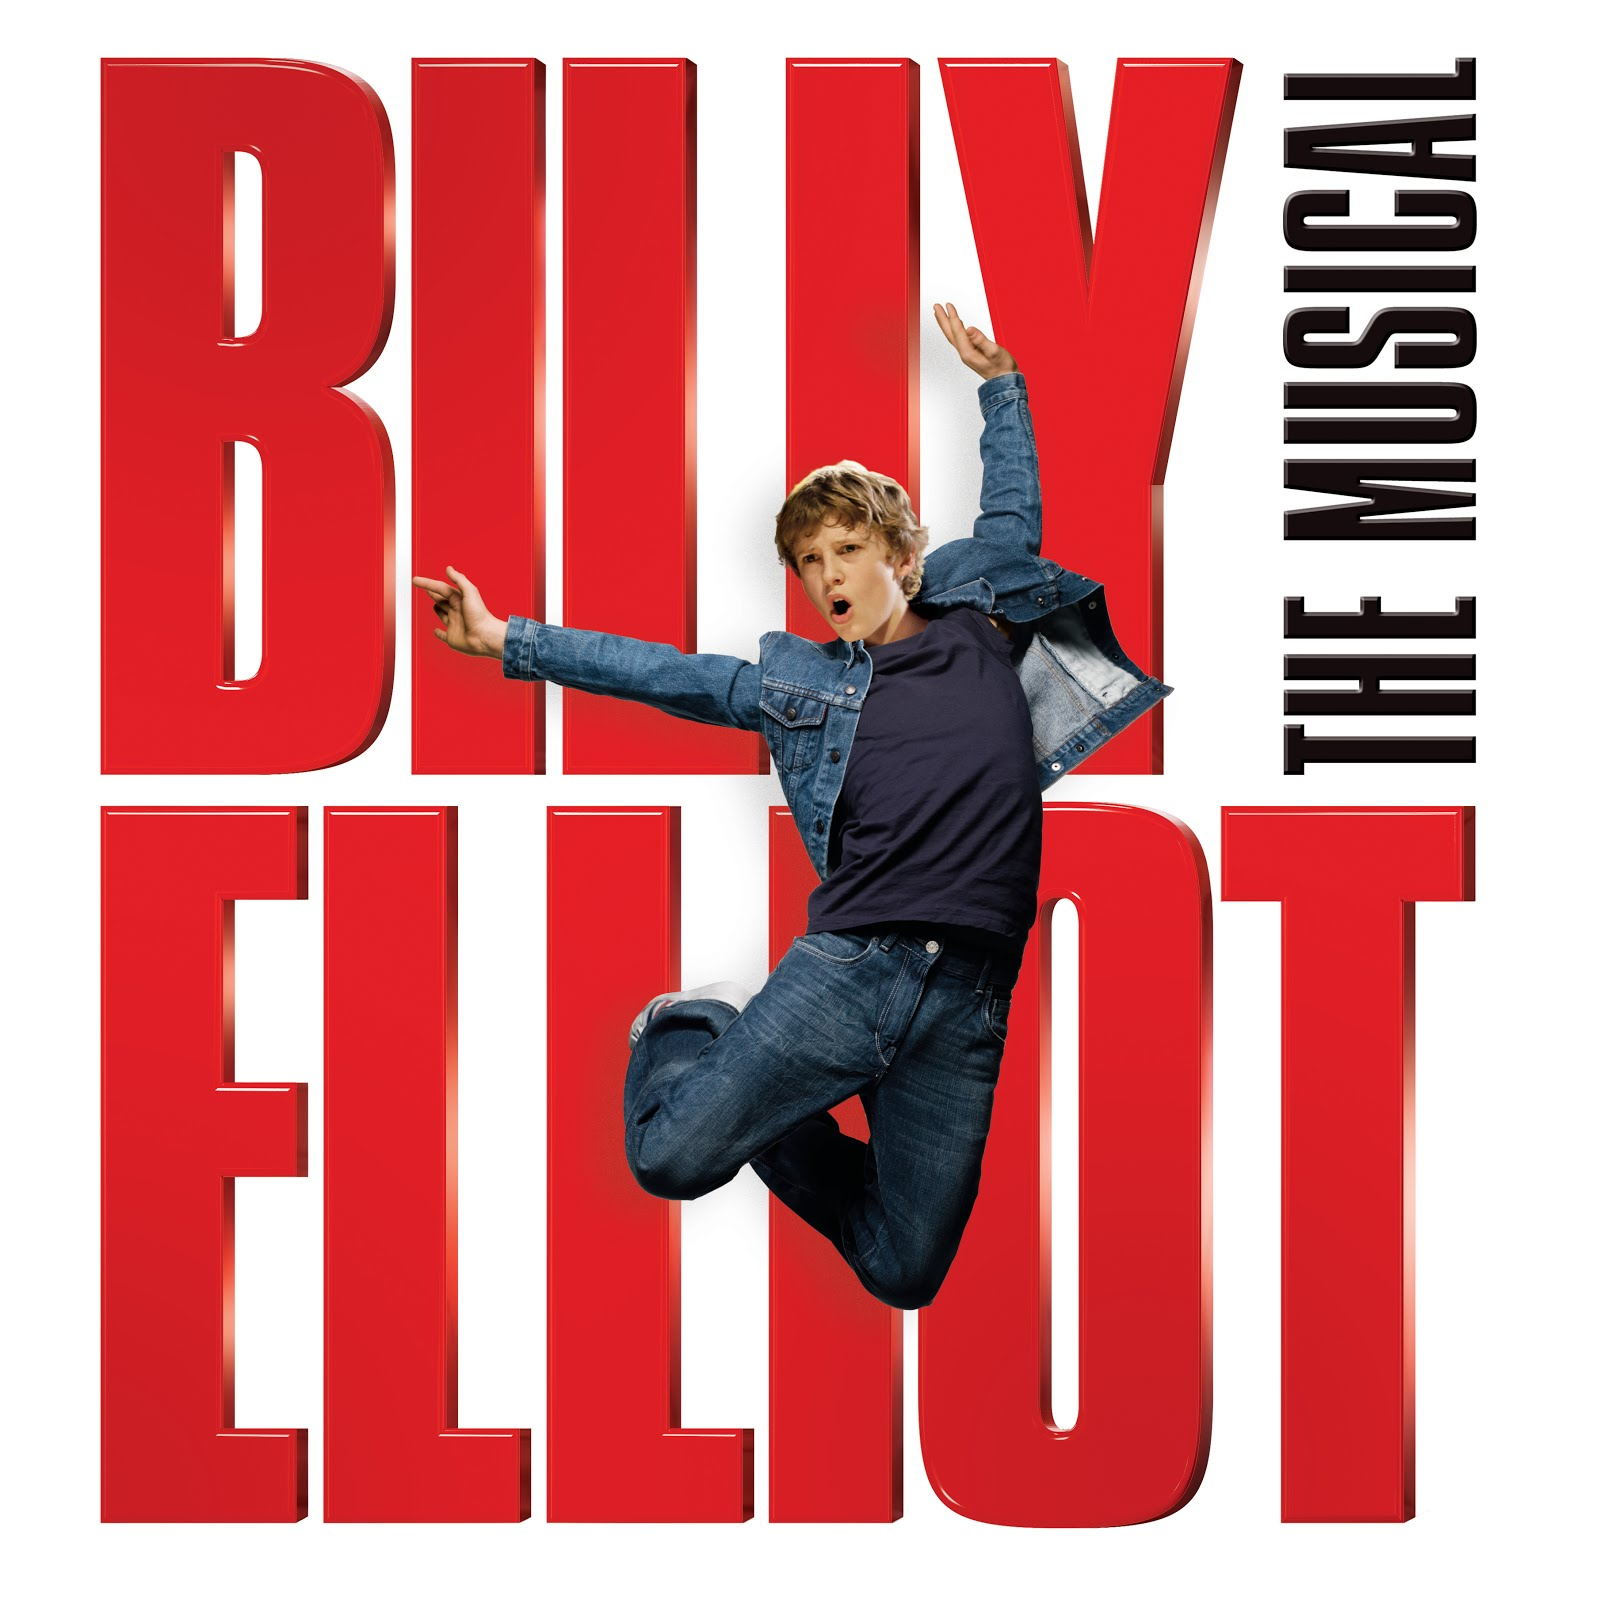 OFFER: Billy Elliot - save £30